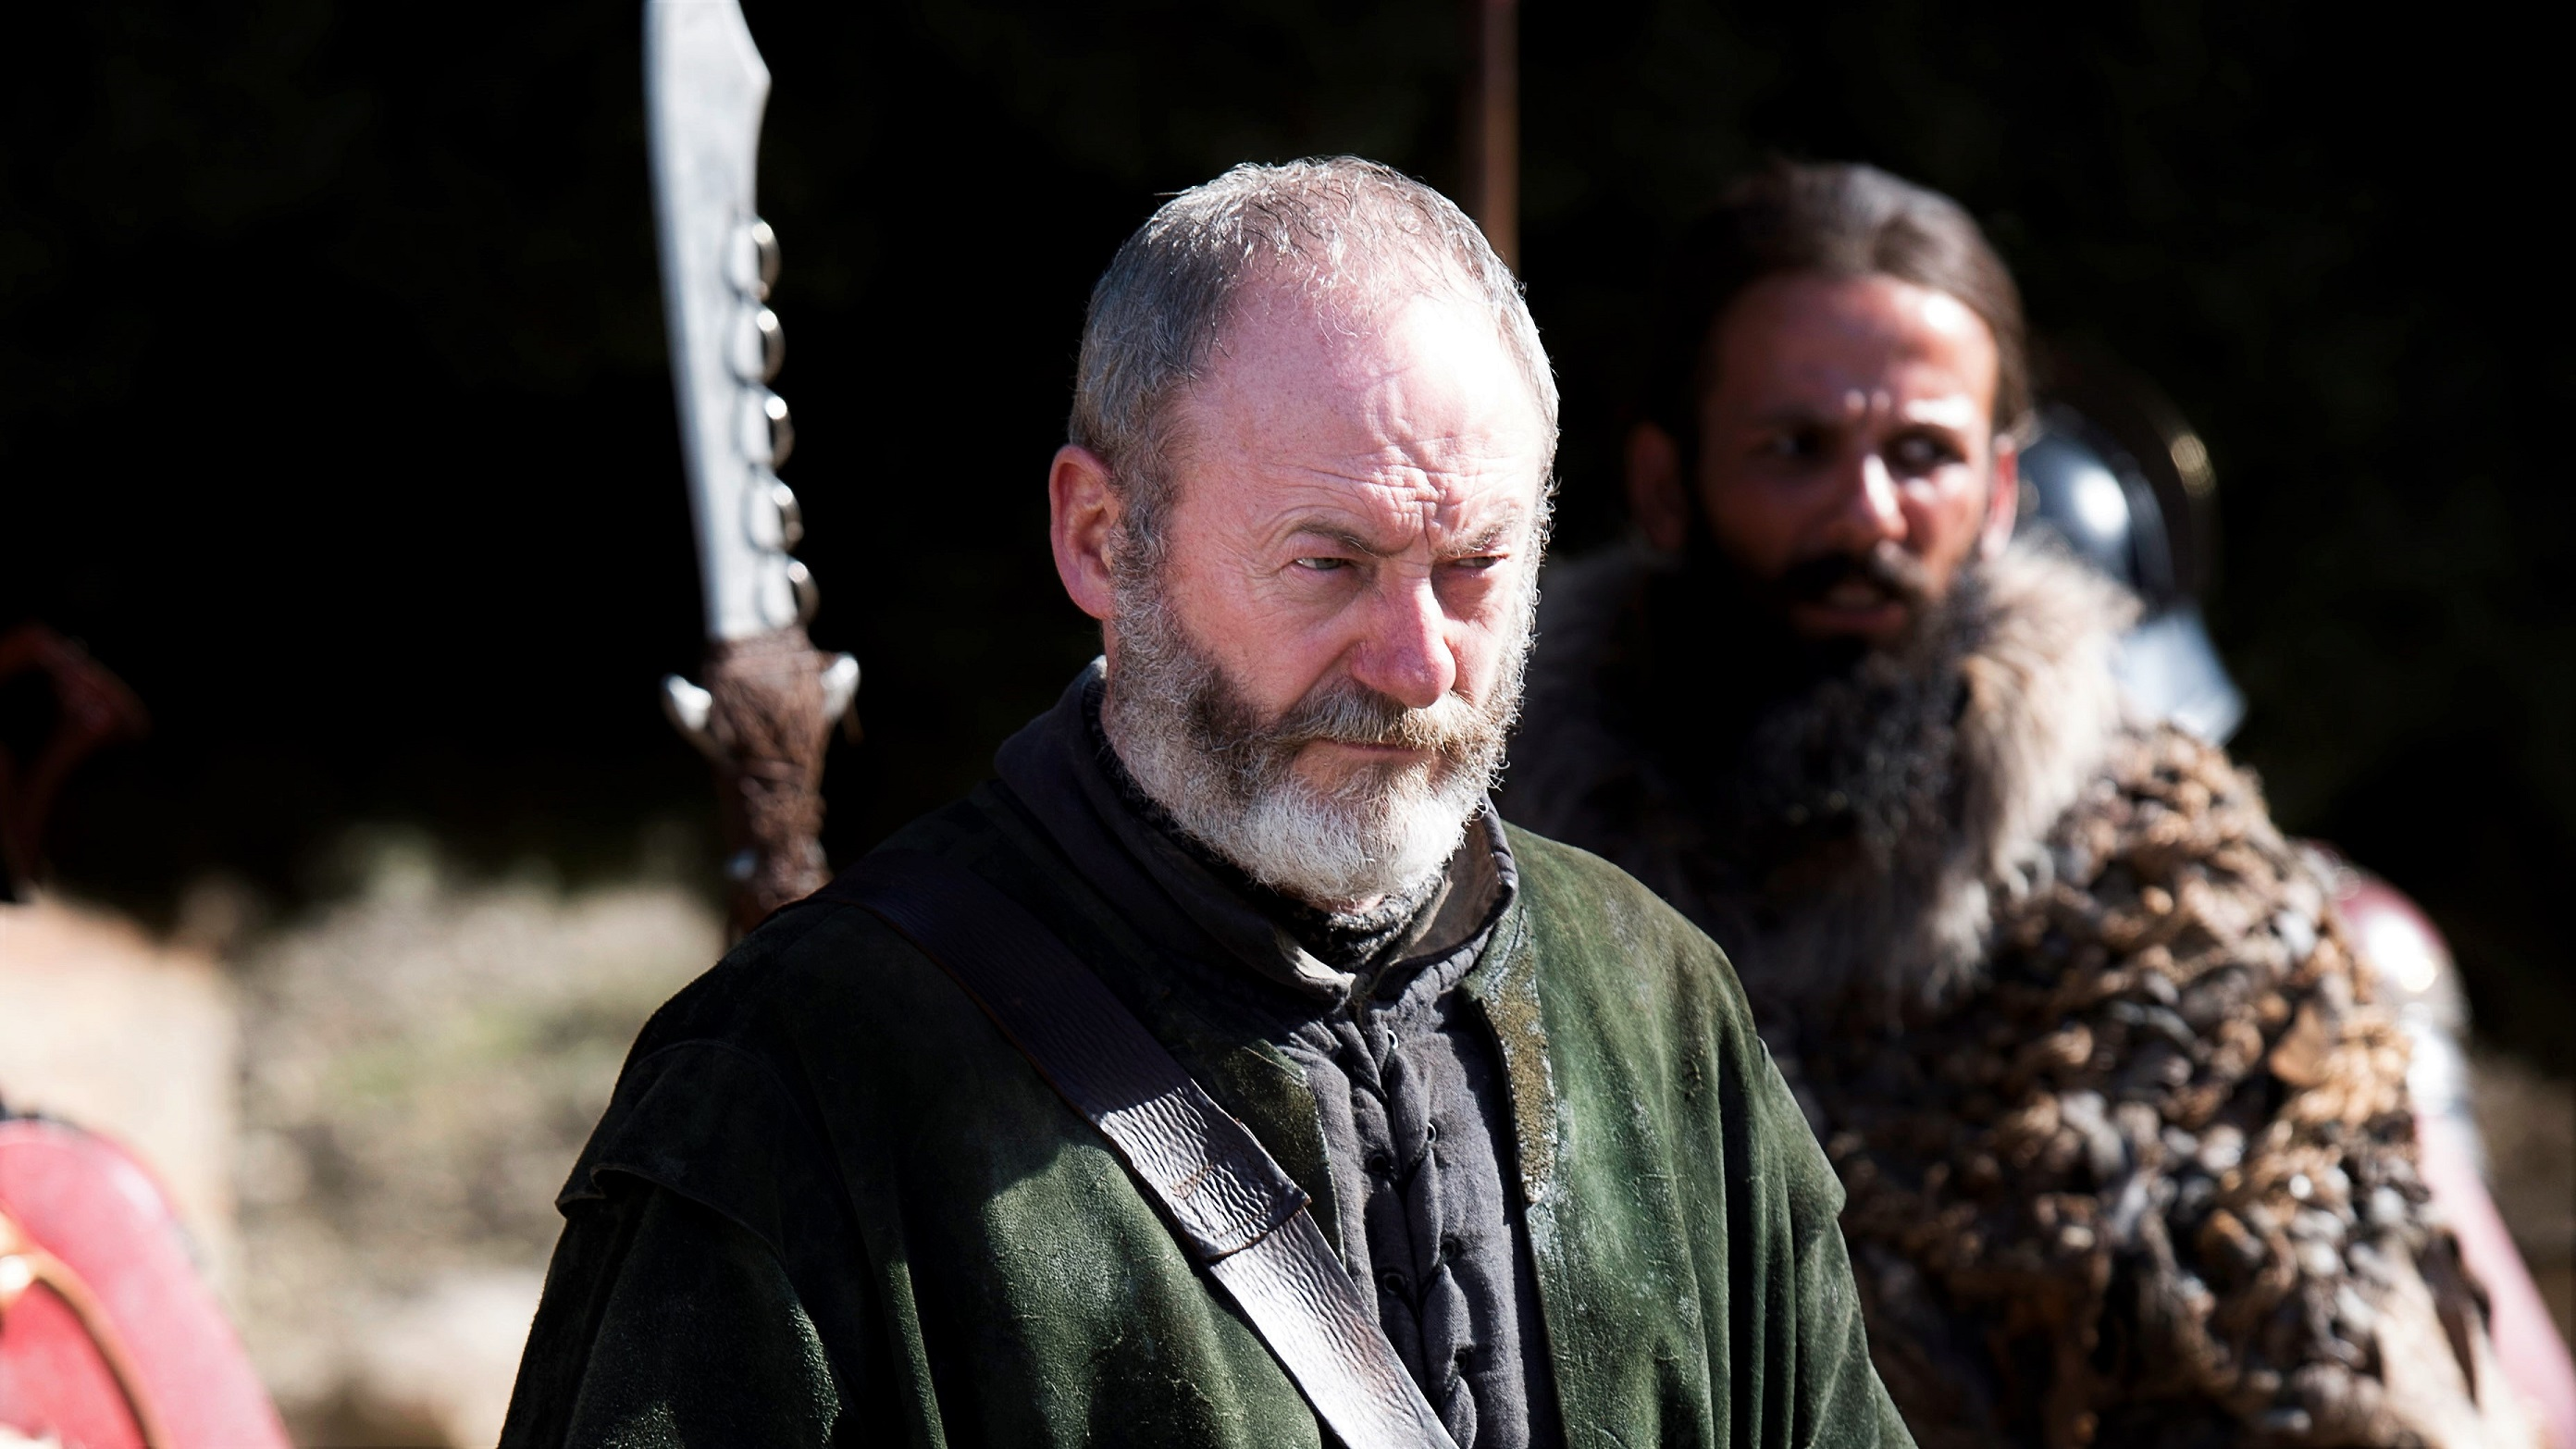 Liam Cunningham as Davos Seaworth in Season 7.